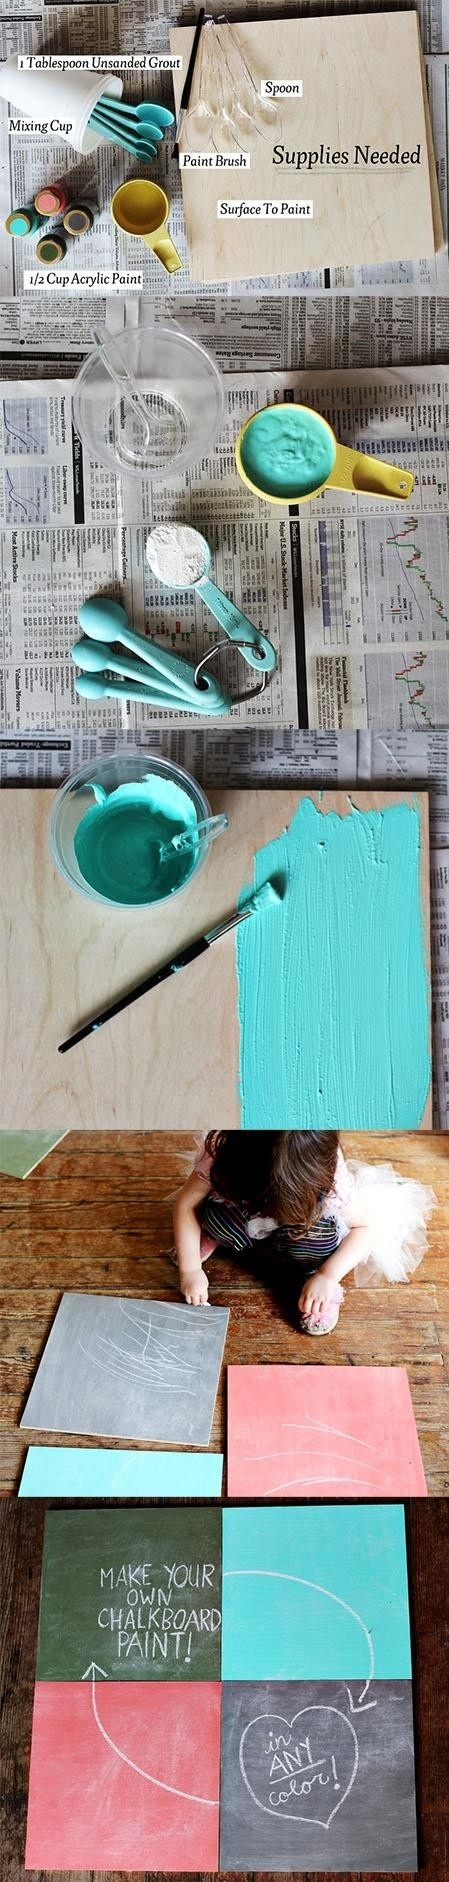 17 best images about chalkboard on pinterest fonts for Diy chalk paint problems